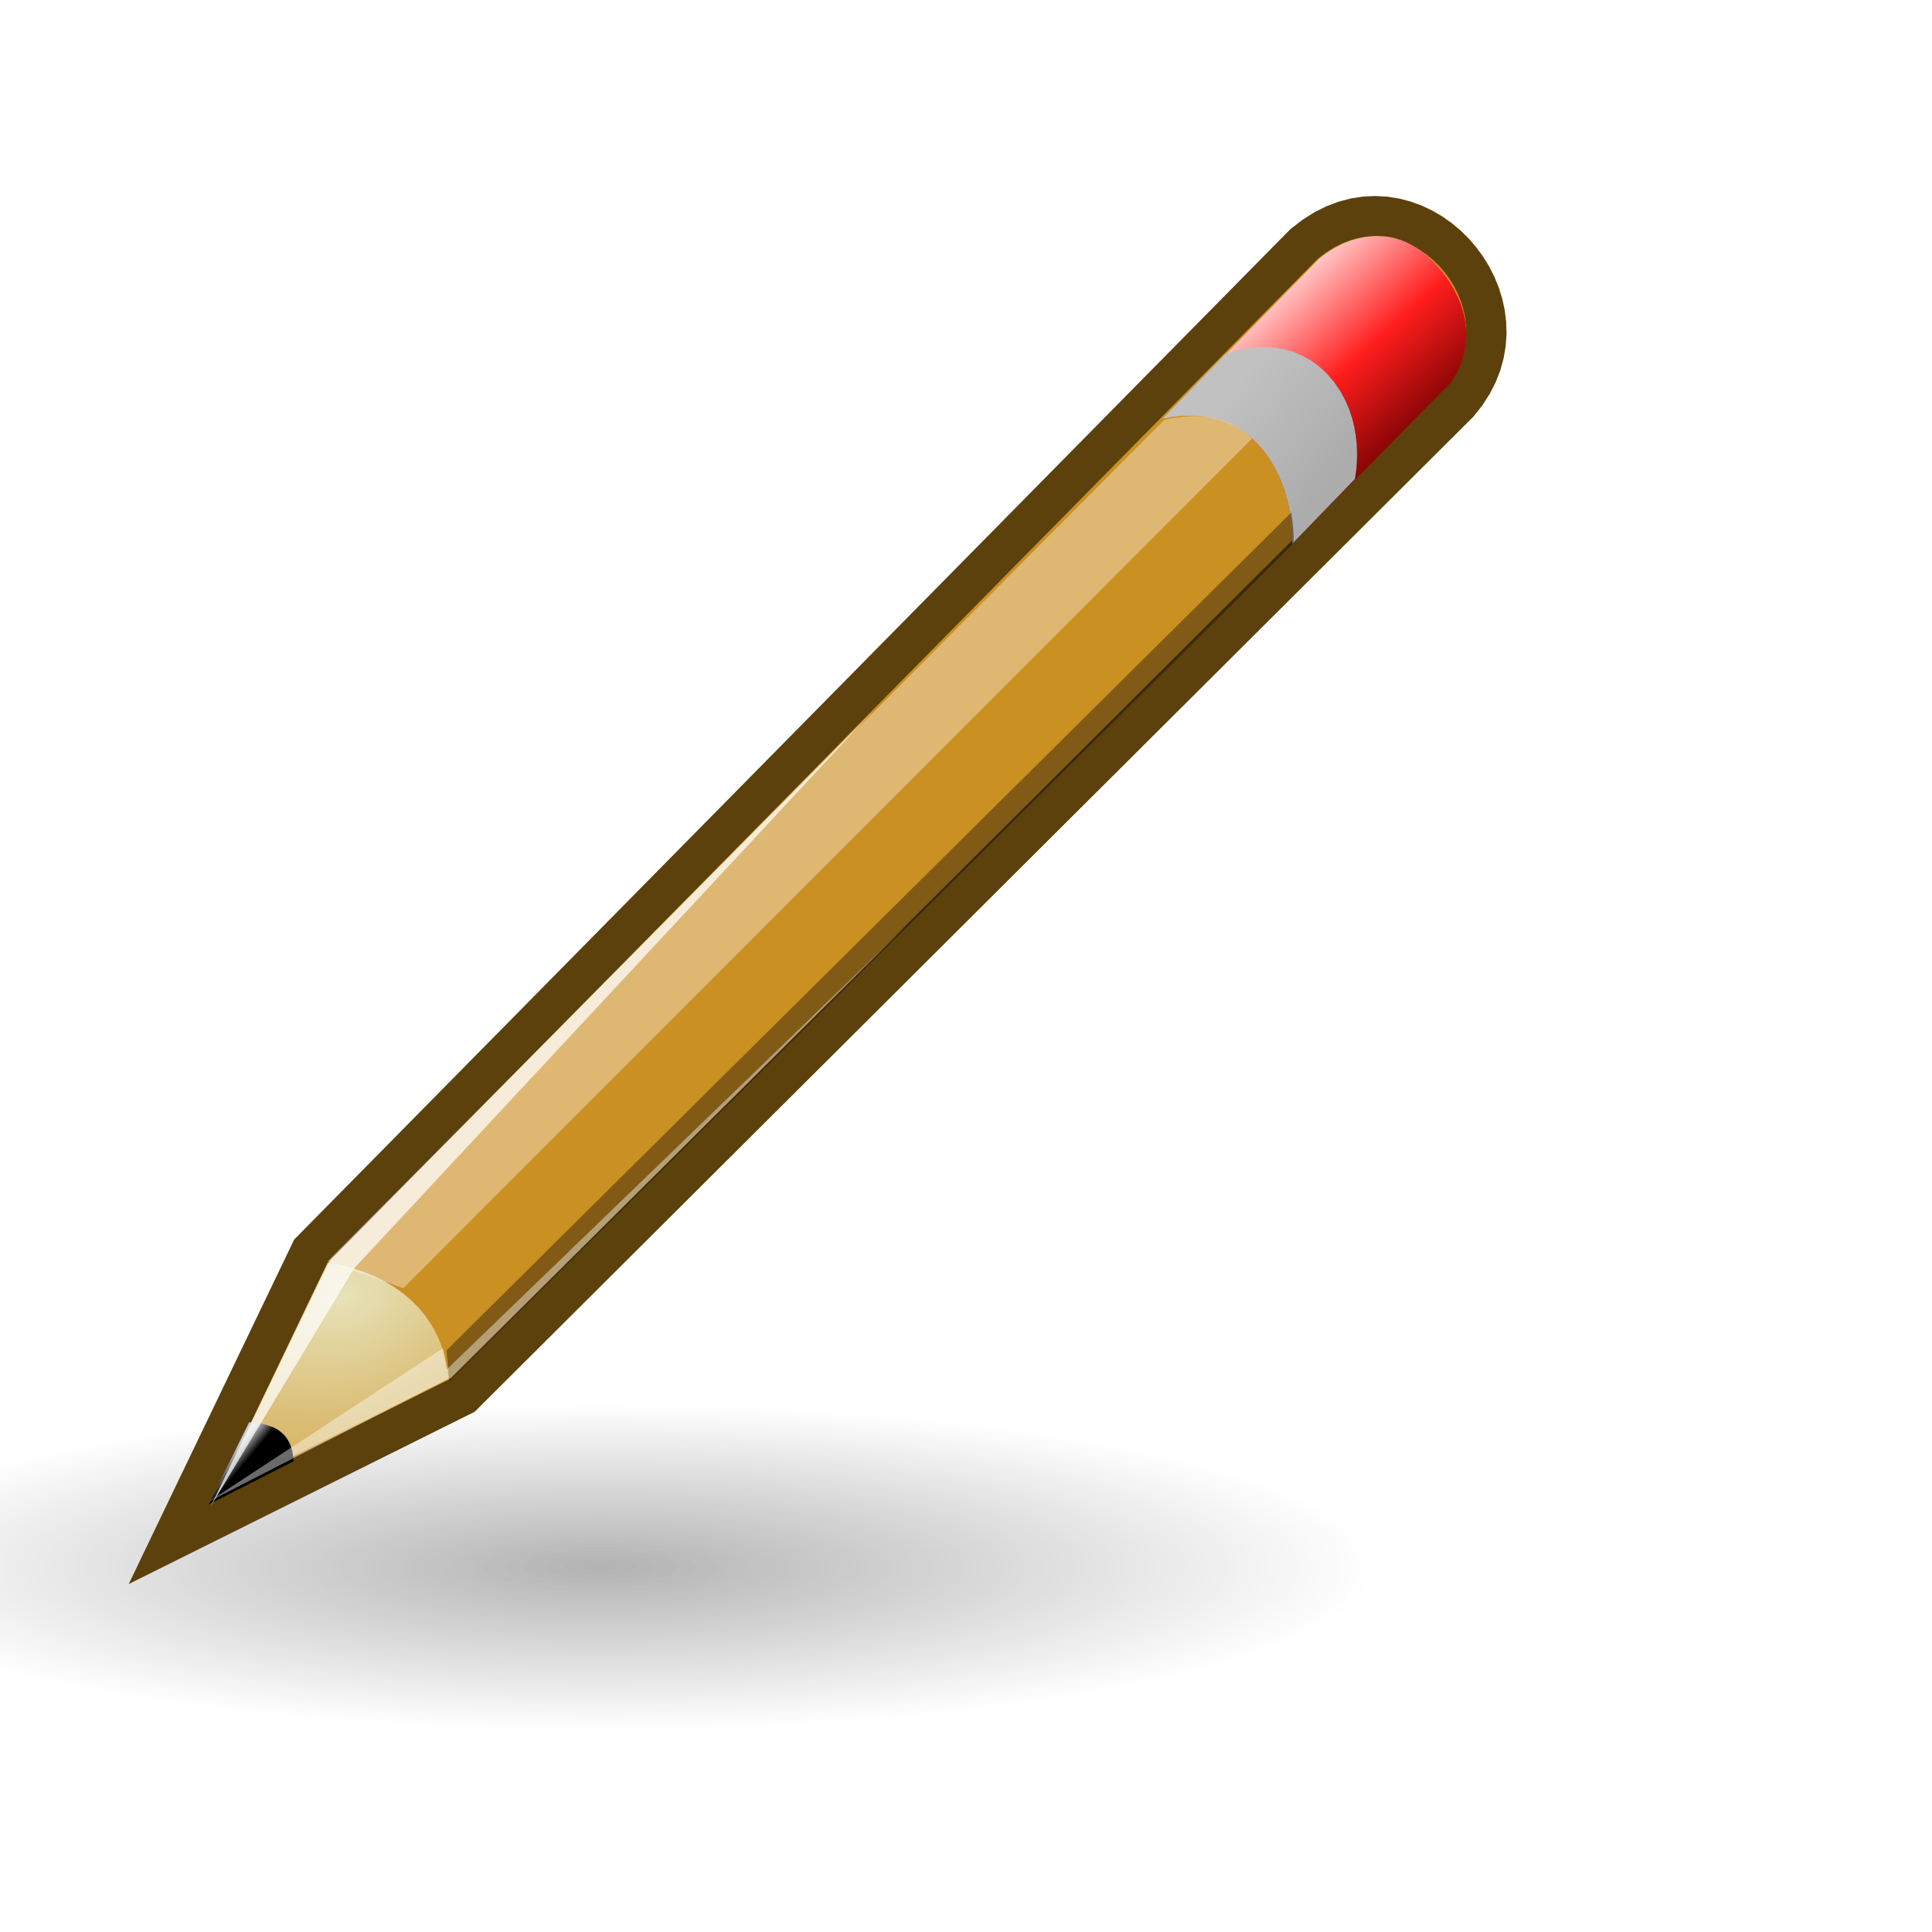 Pencil and book clipart free images